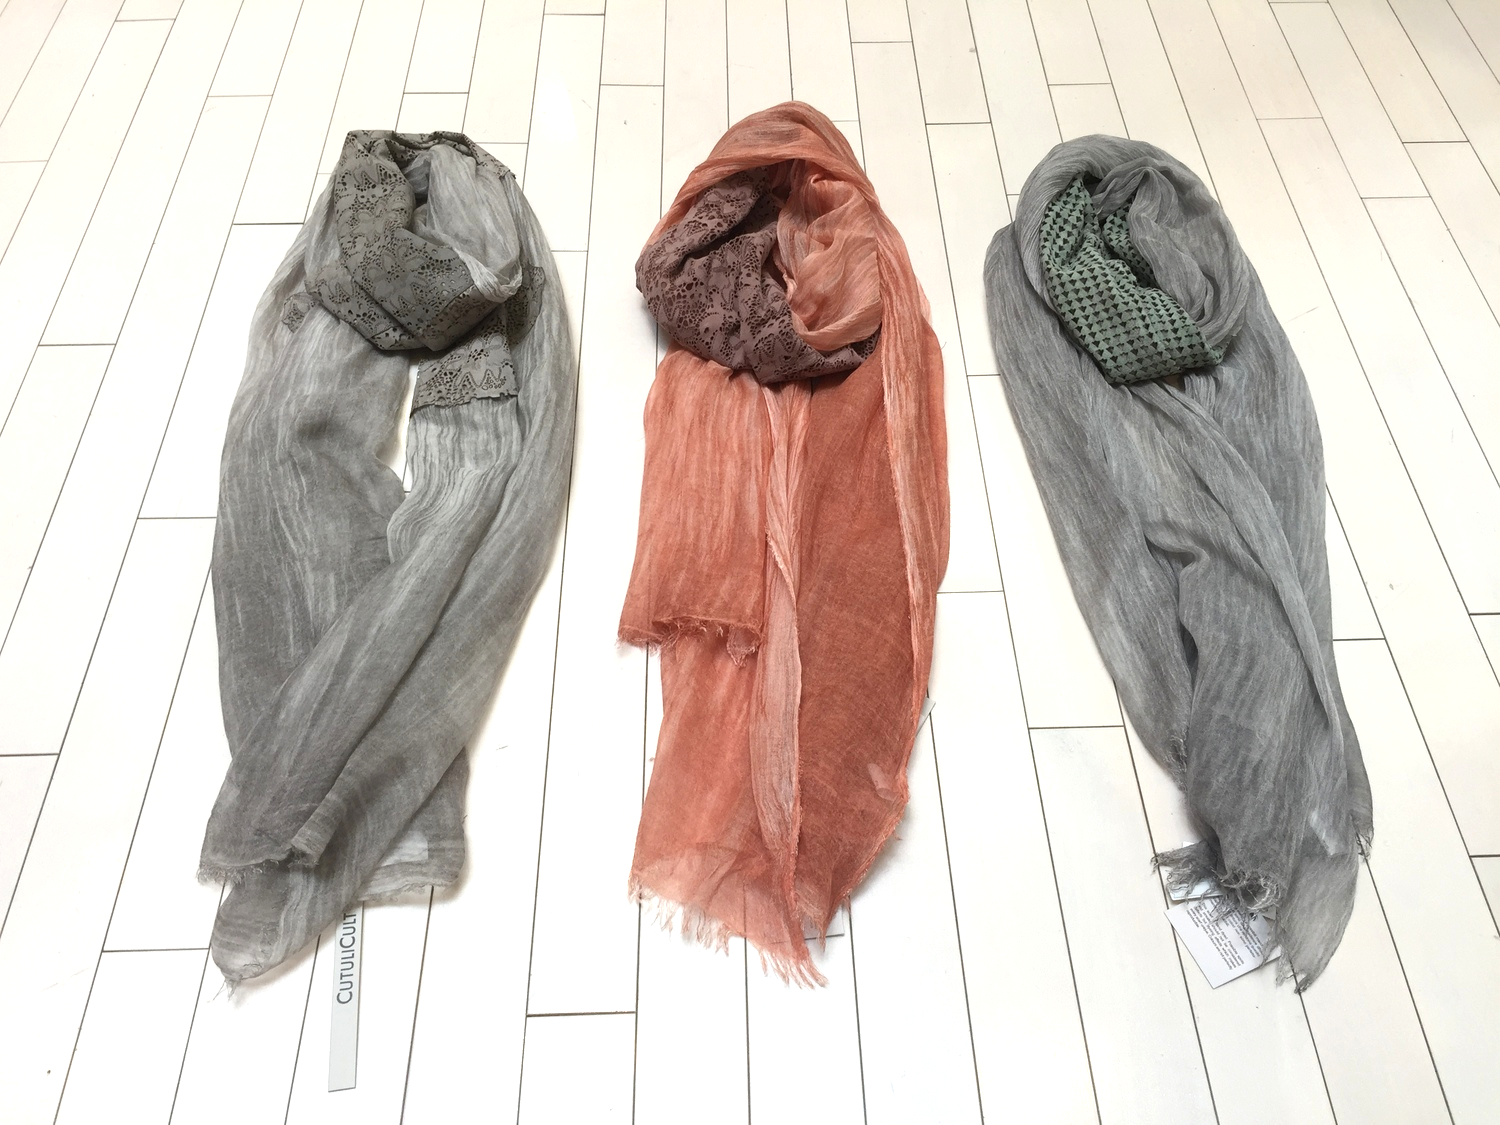 Cutuli Cult Scarves at MercantileJPG